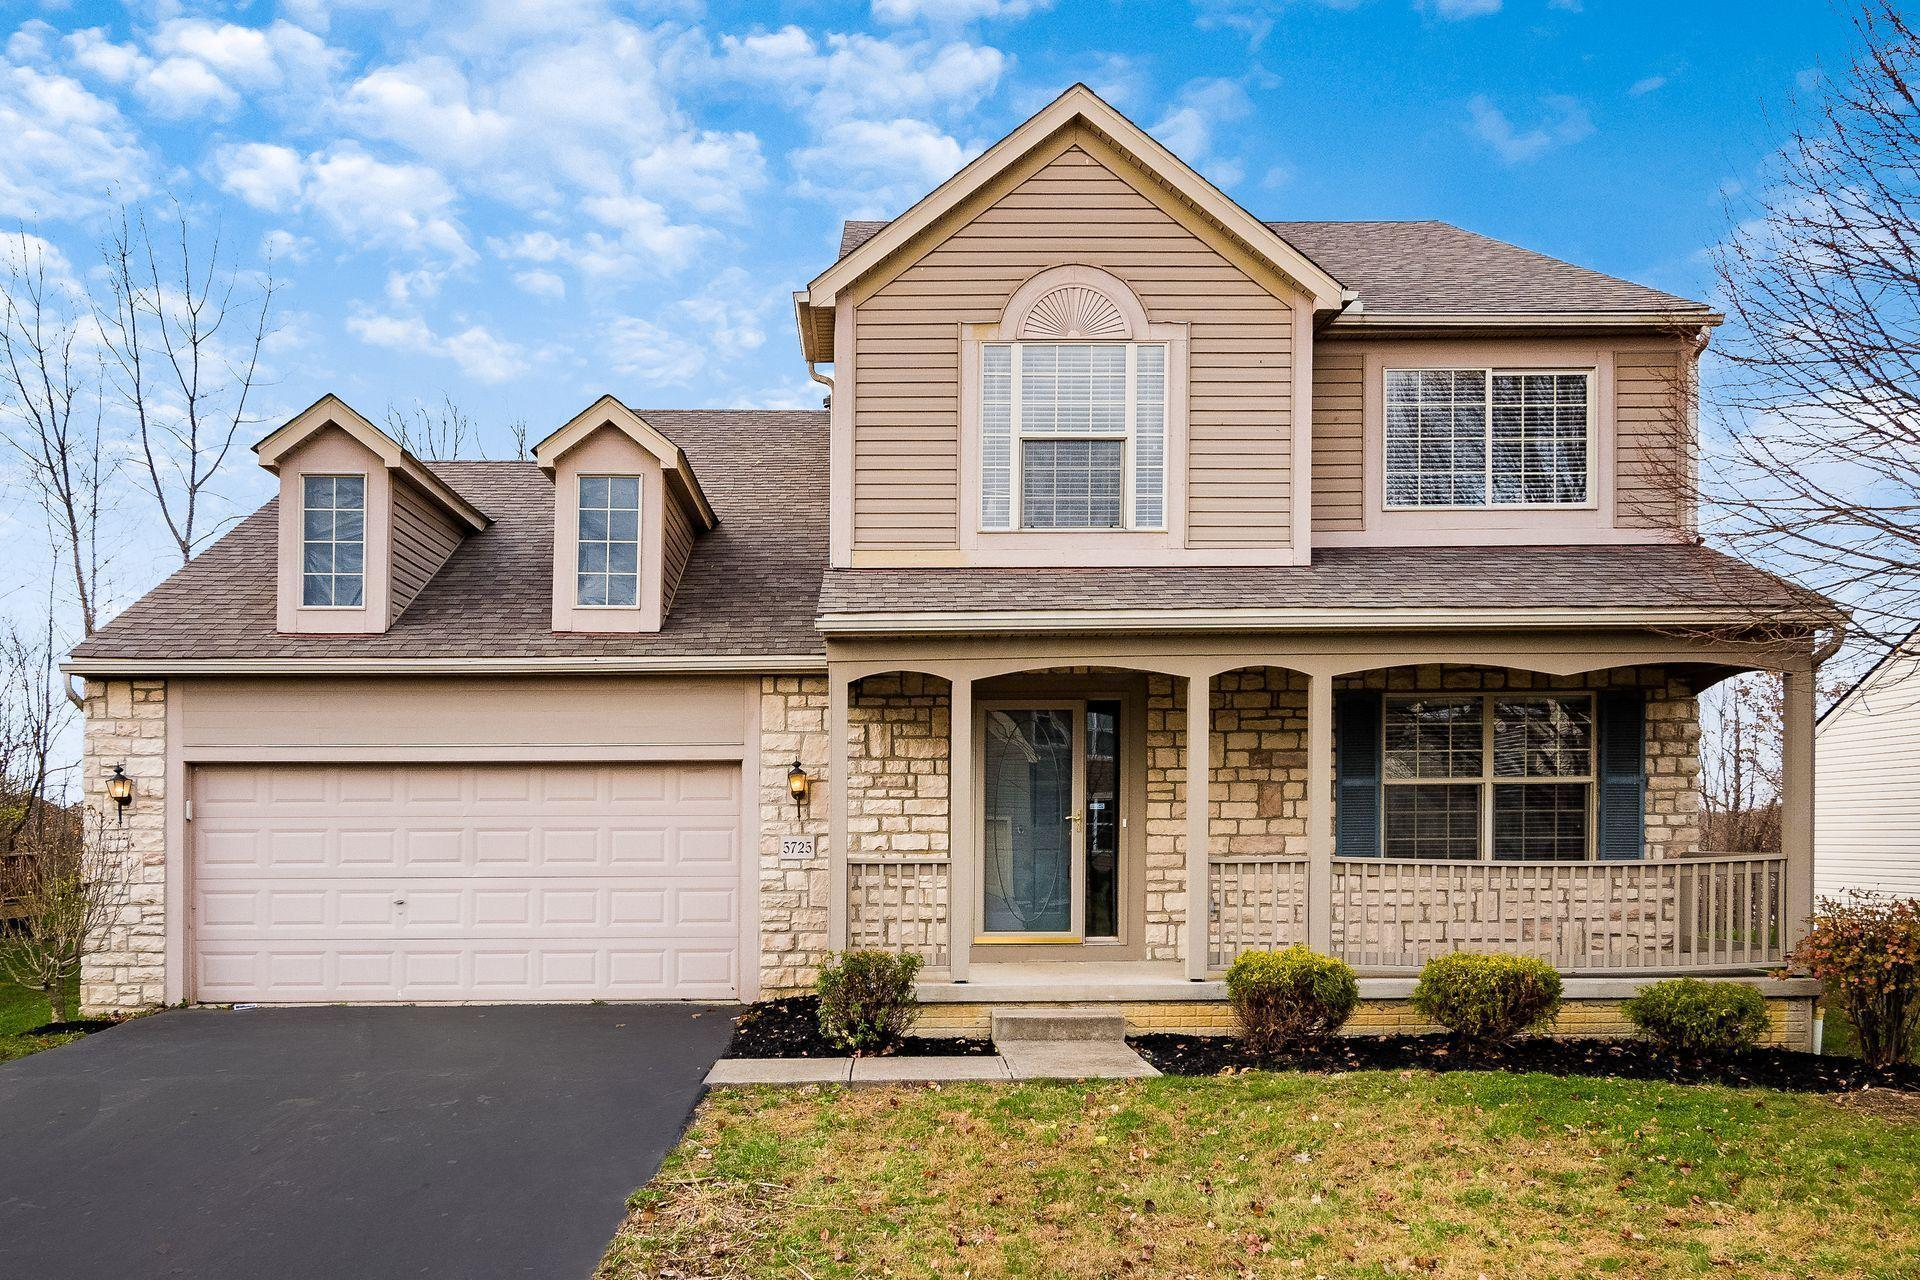 Photo of 5725 Venison Way, Groveport, OH 43125